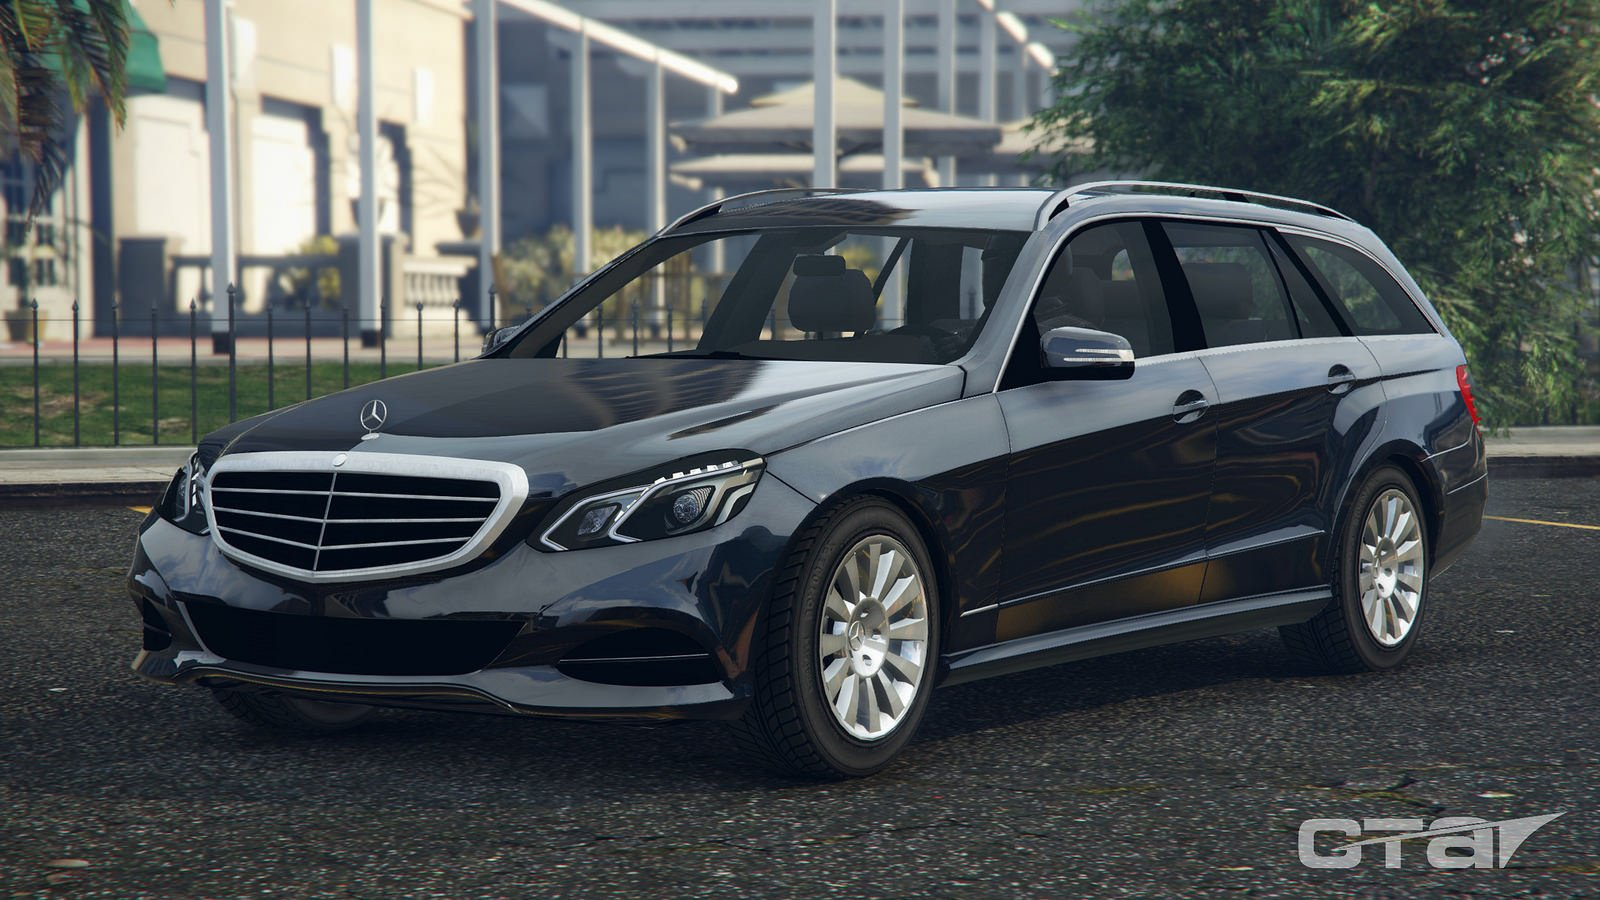 mercedes benz e klasse t modell 2015 gta 5. Black Bedroom Furniture Sets. Home Design Ideas